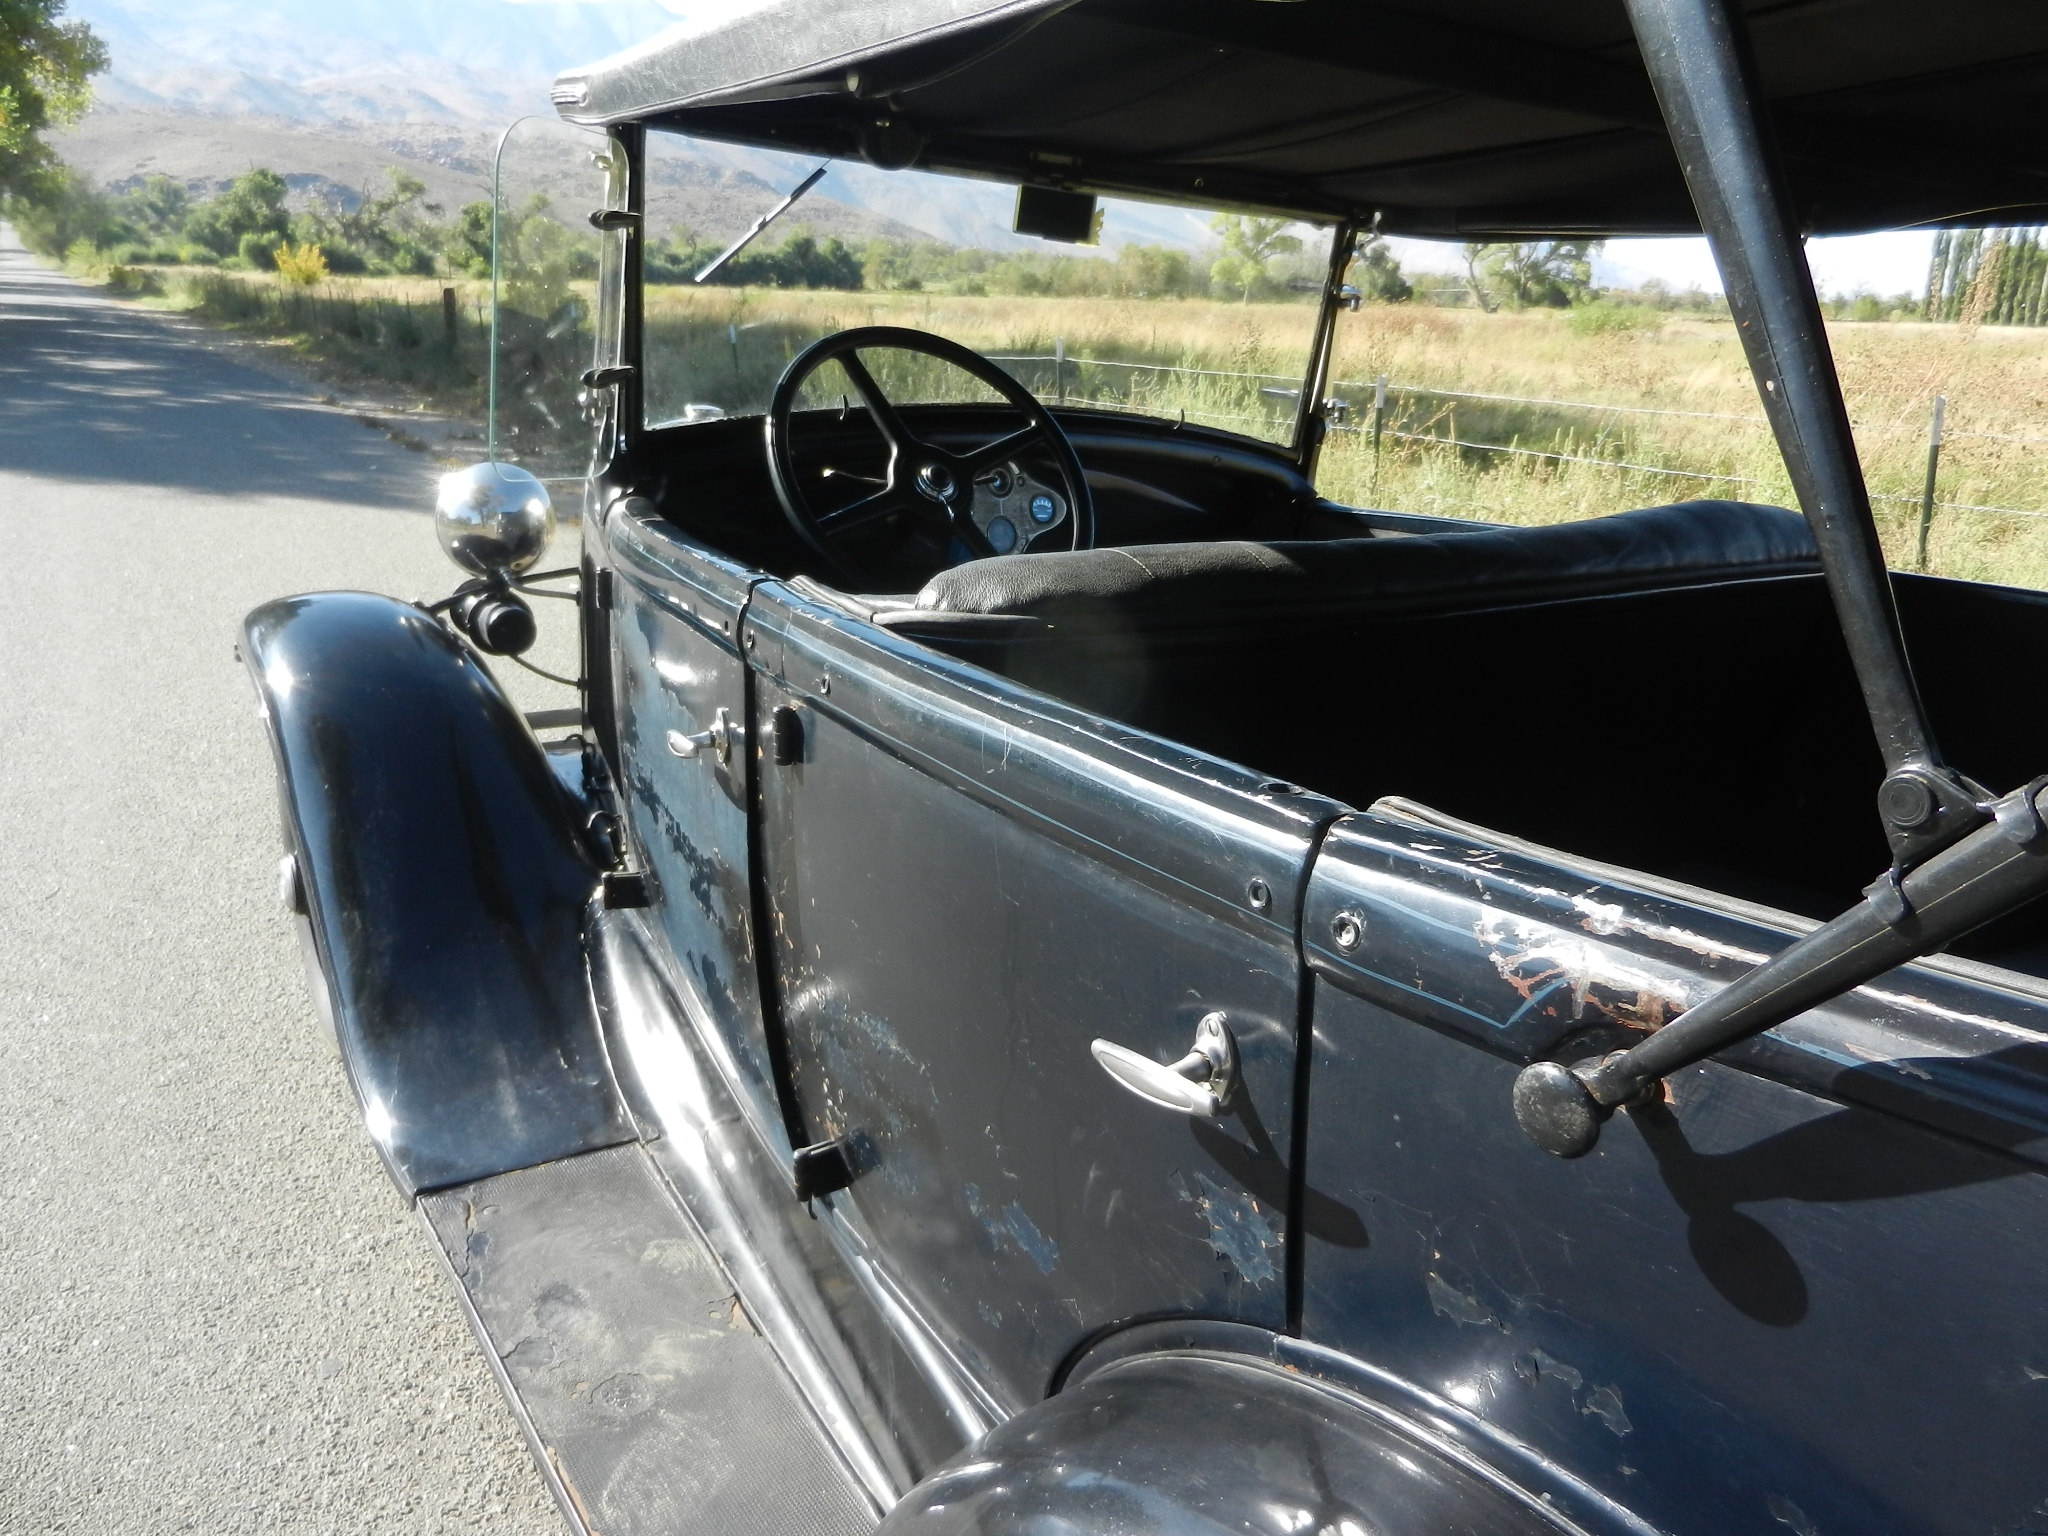 1931 Ford Phaeton - Cars For Sale - Antique Automobile Club of ...